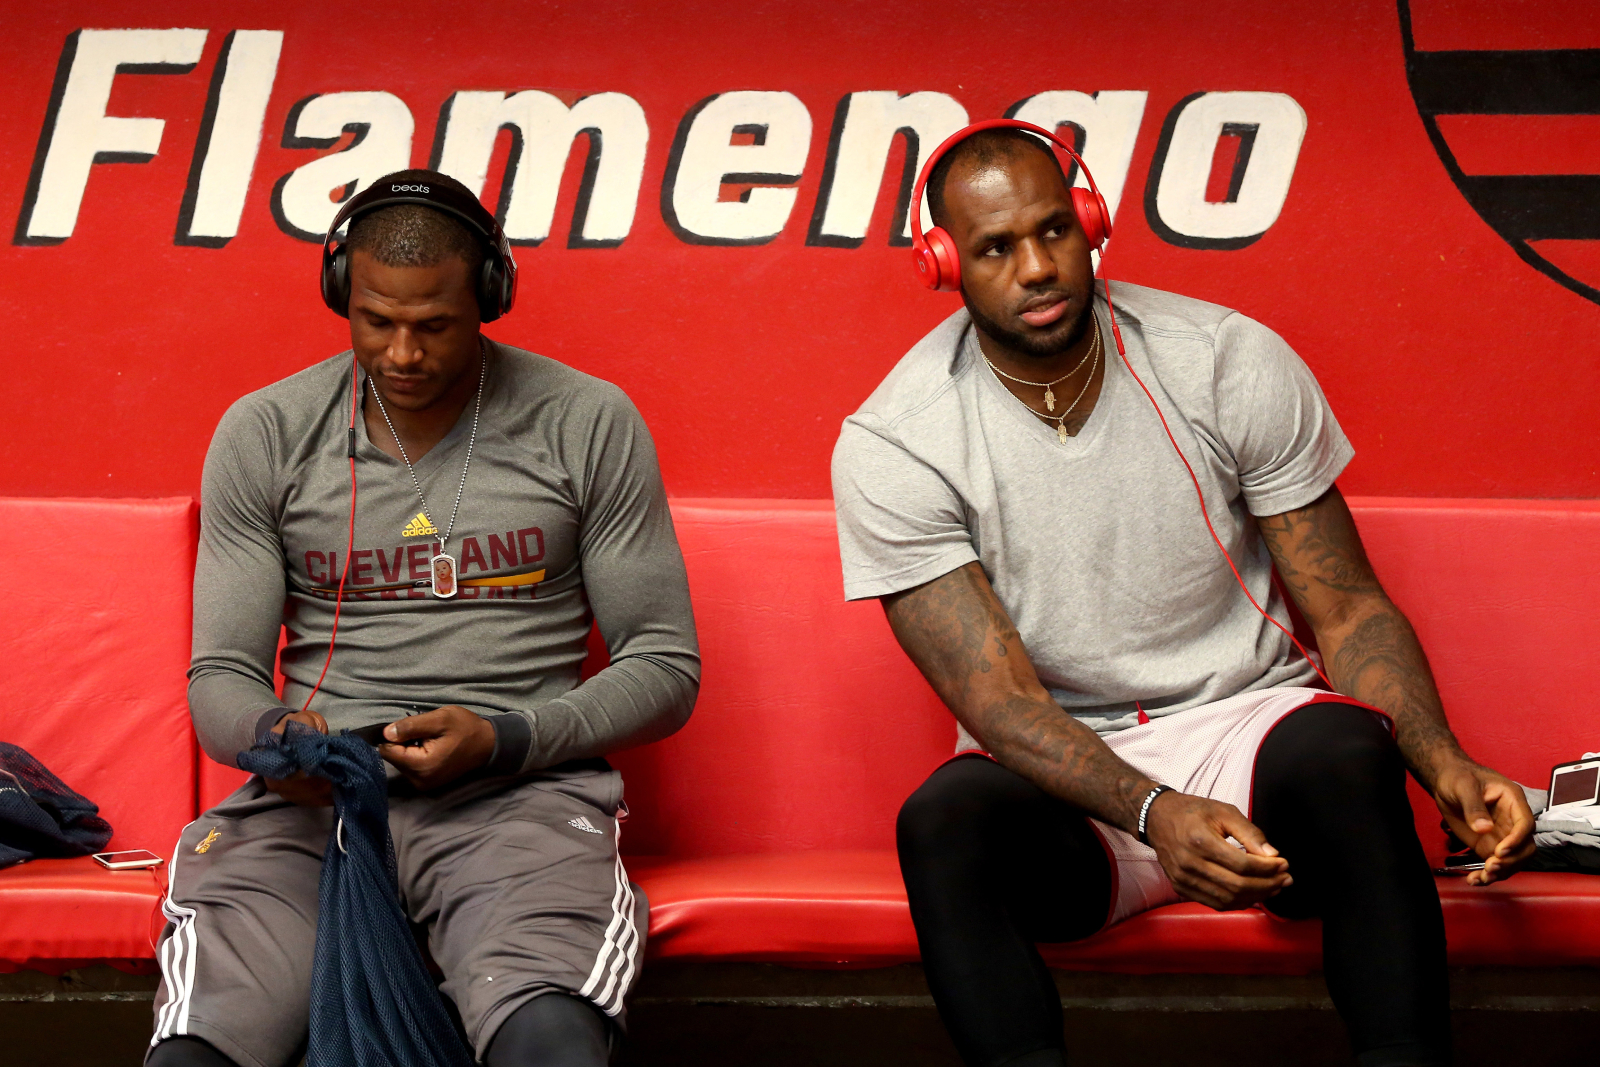 Dion Waiters is now playing with LeBron James on the Lakers. However, it didn't go well when the two played together on the Cavaliers.